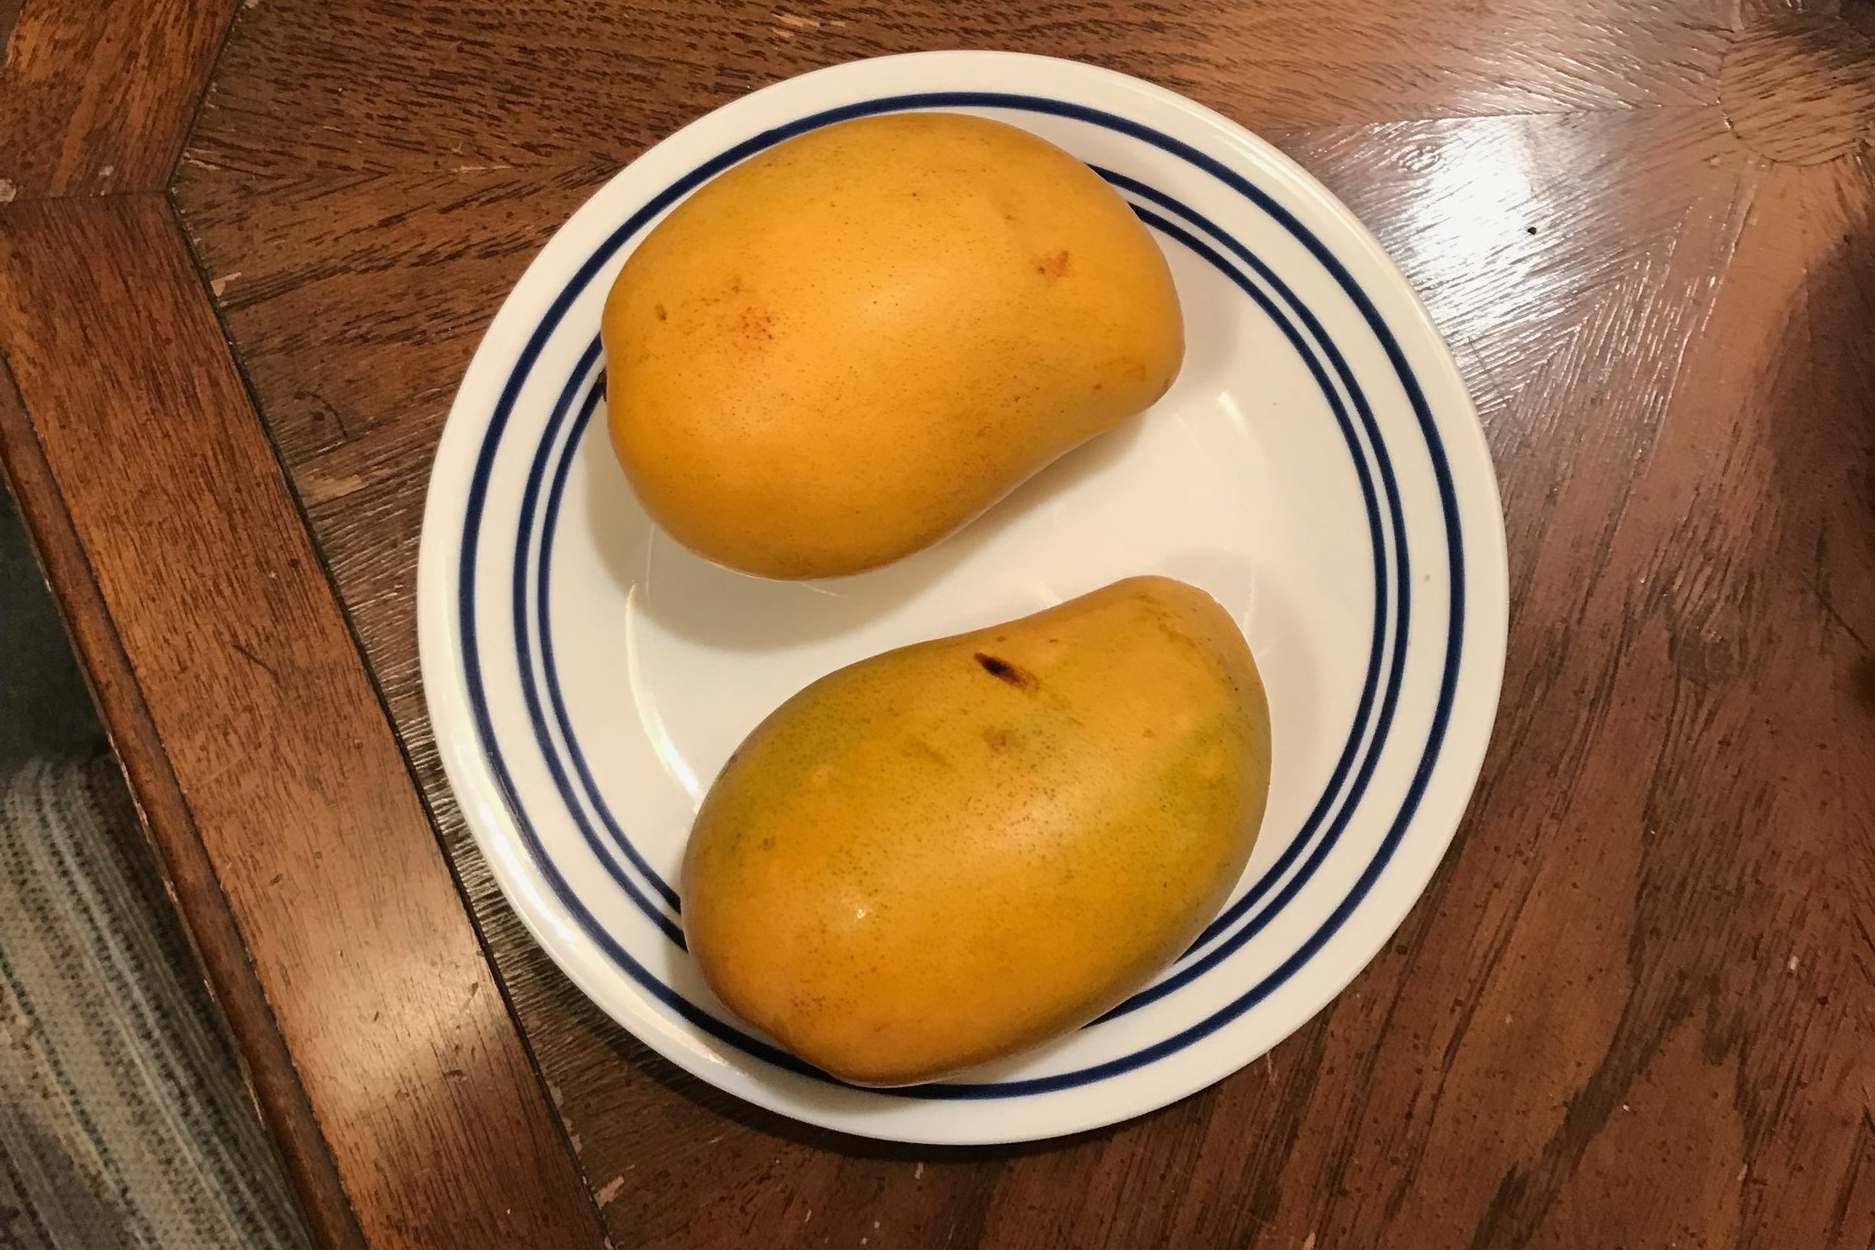 See? Even mangoes have significant others. Oh, to be with someone.